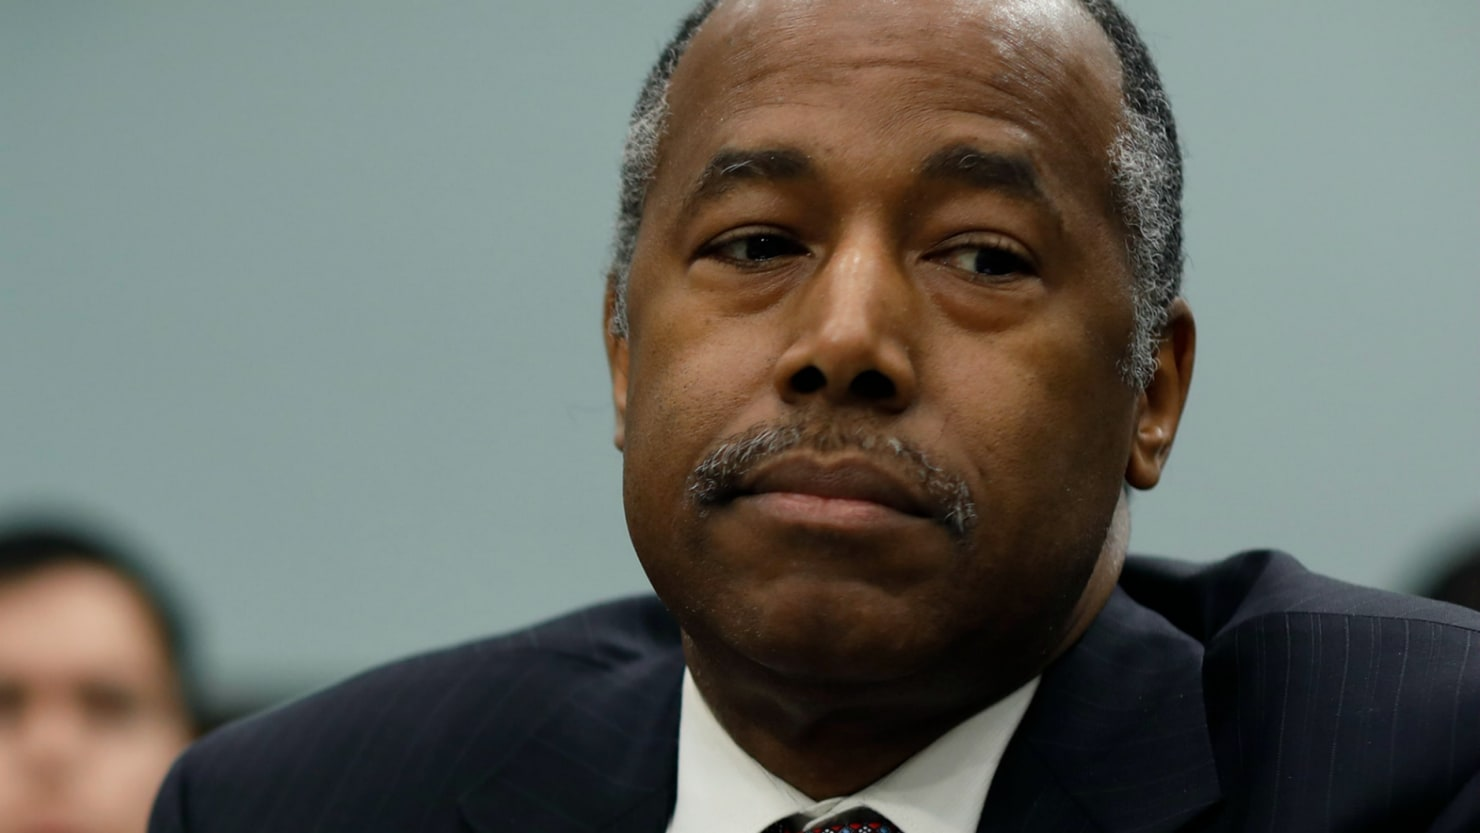 Ben Carson Says Ford's Allegations Are Part of Socialist Plot